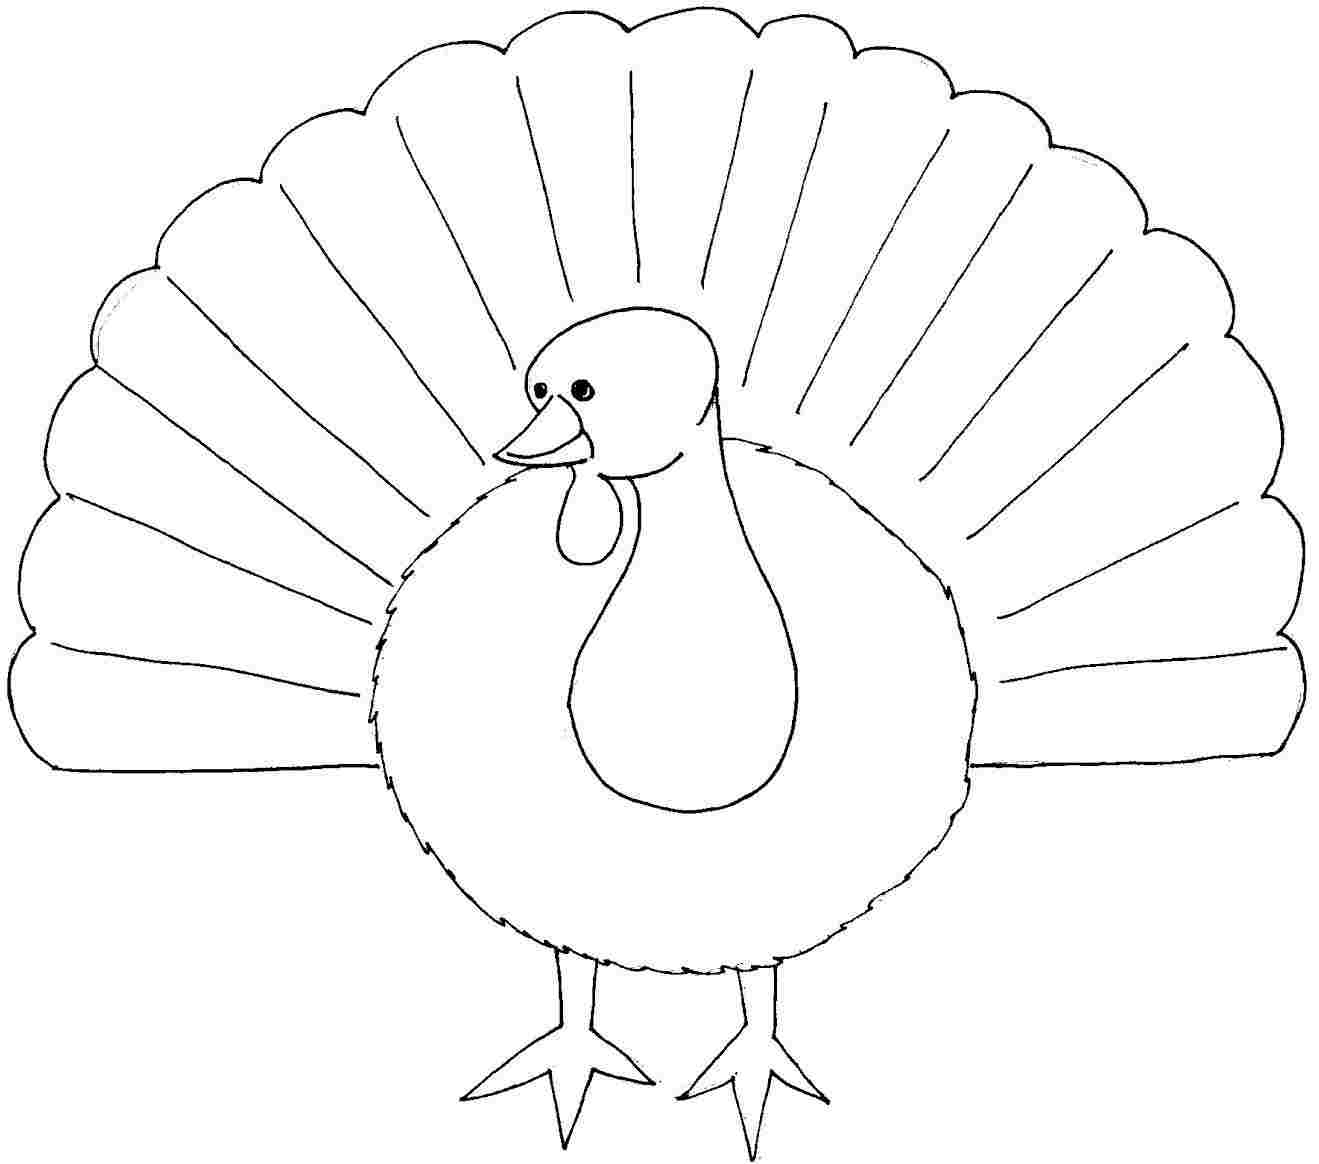 1319x1164 Turkey Coloring Pages Free Printable, Thanksgiving Coloring